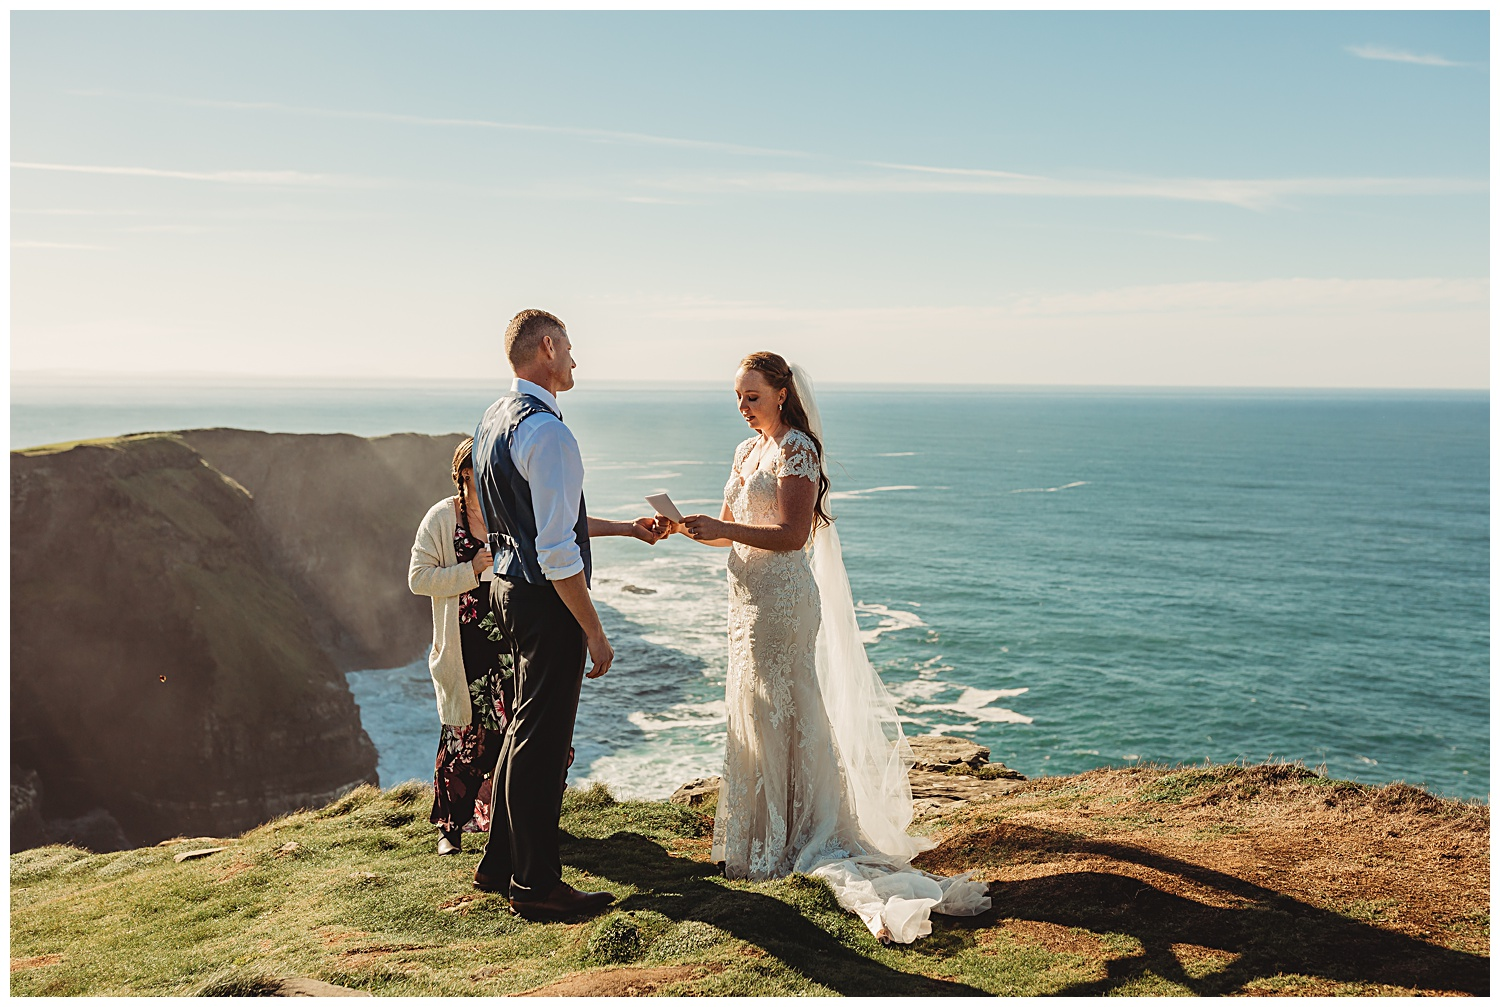 The Cliffs of Moher Destination Wedding Liscannor, County Clare, Ireland_1238.jpg